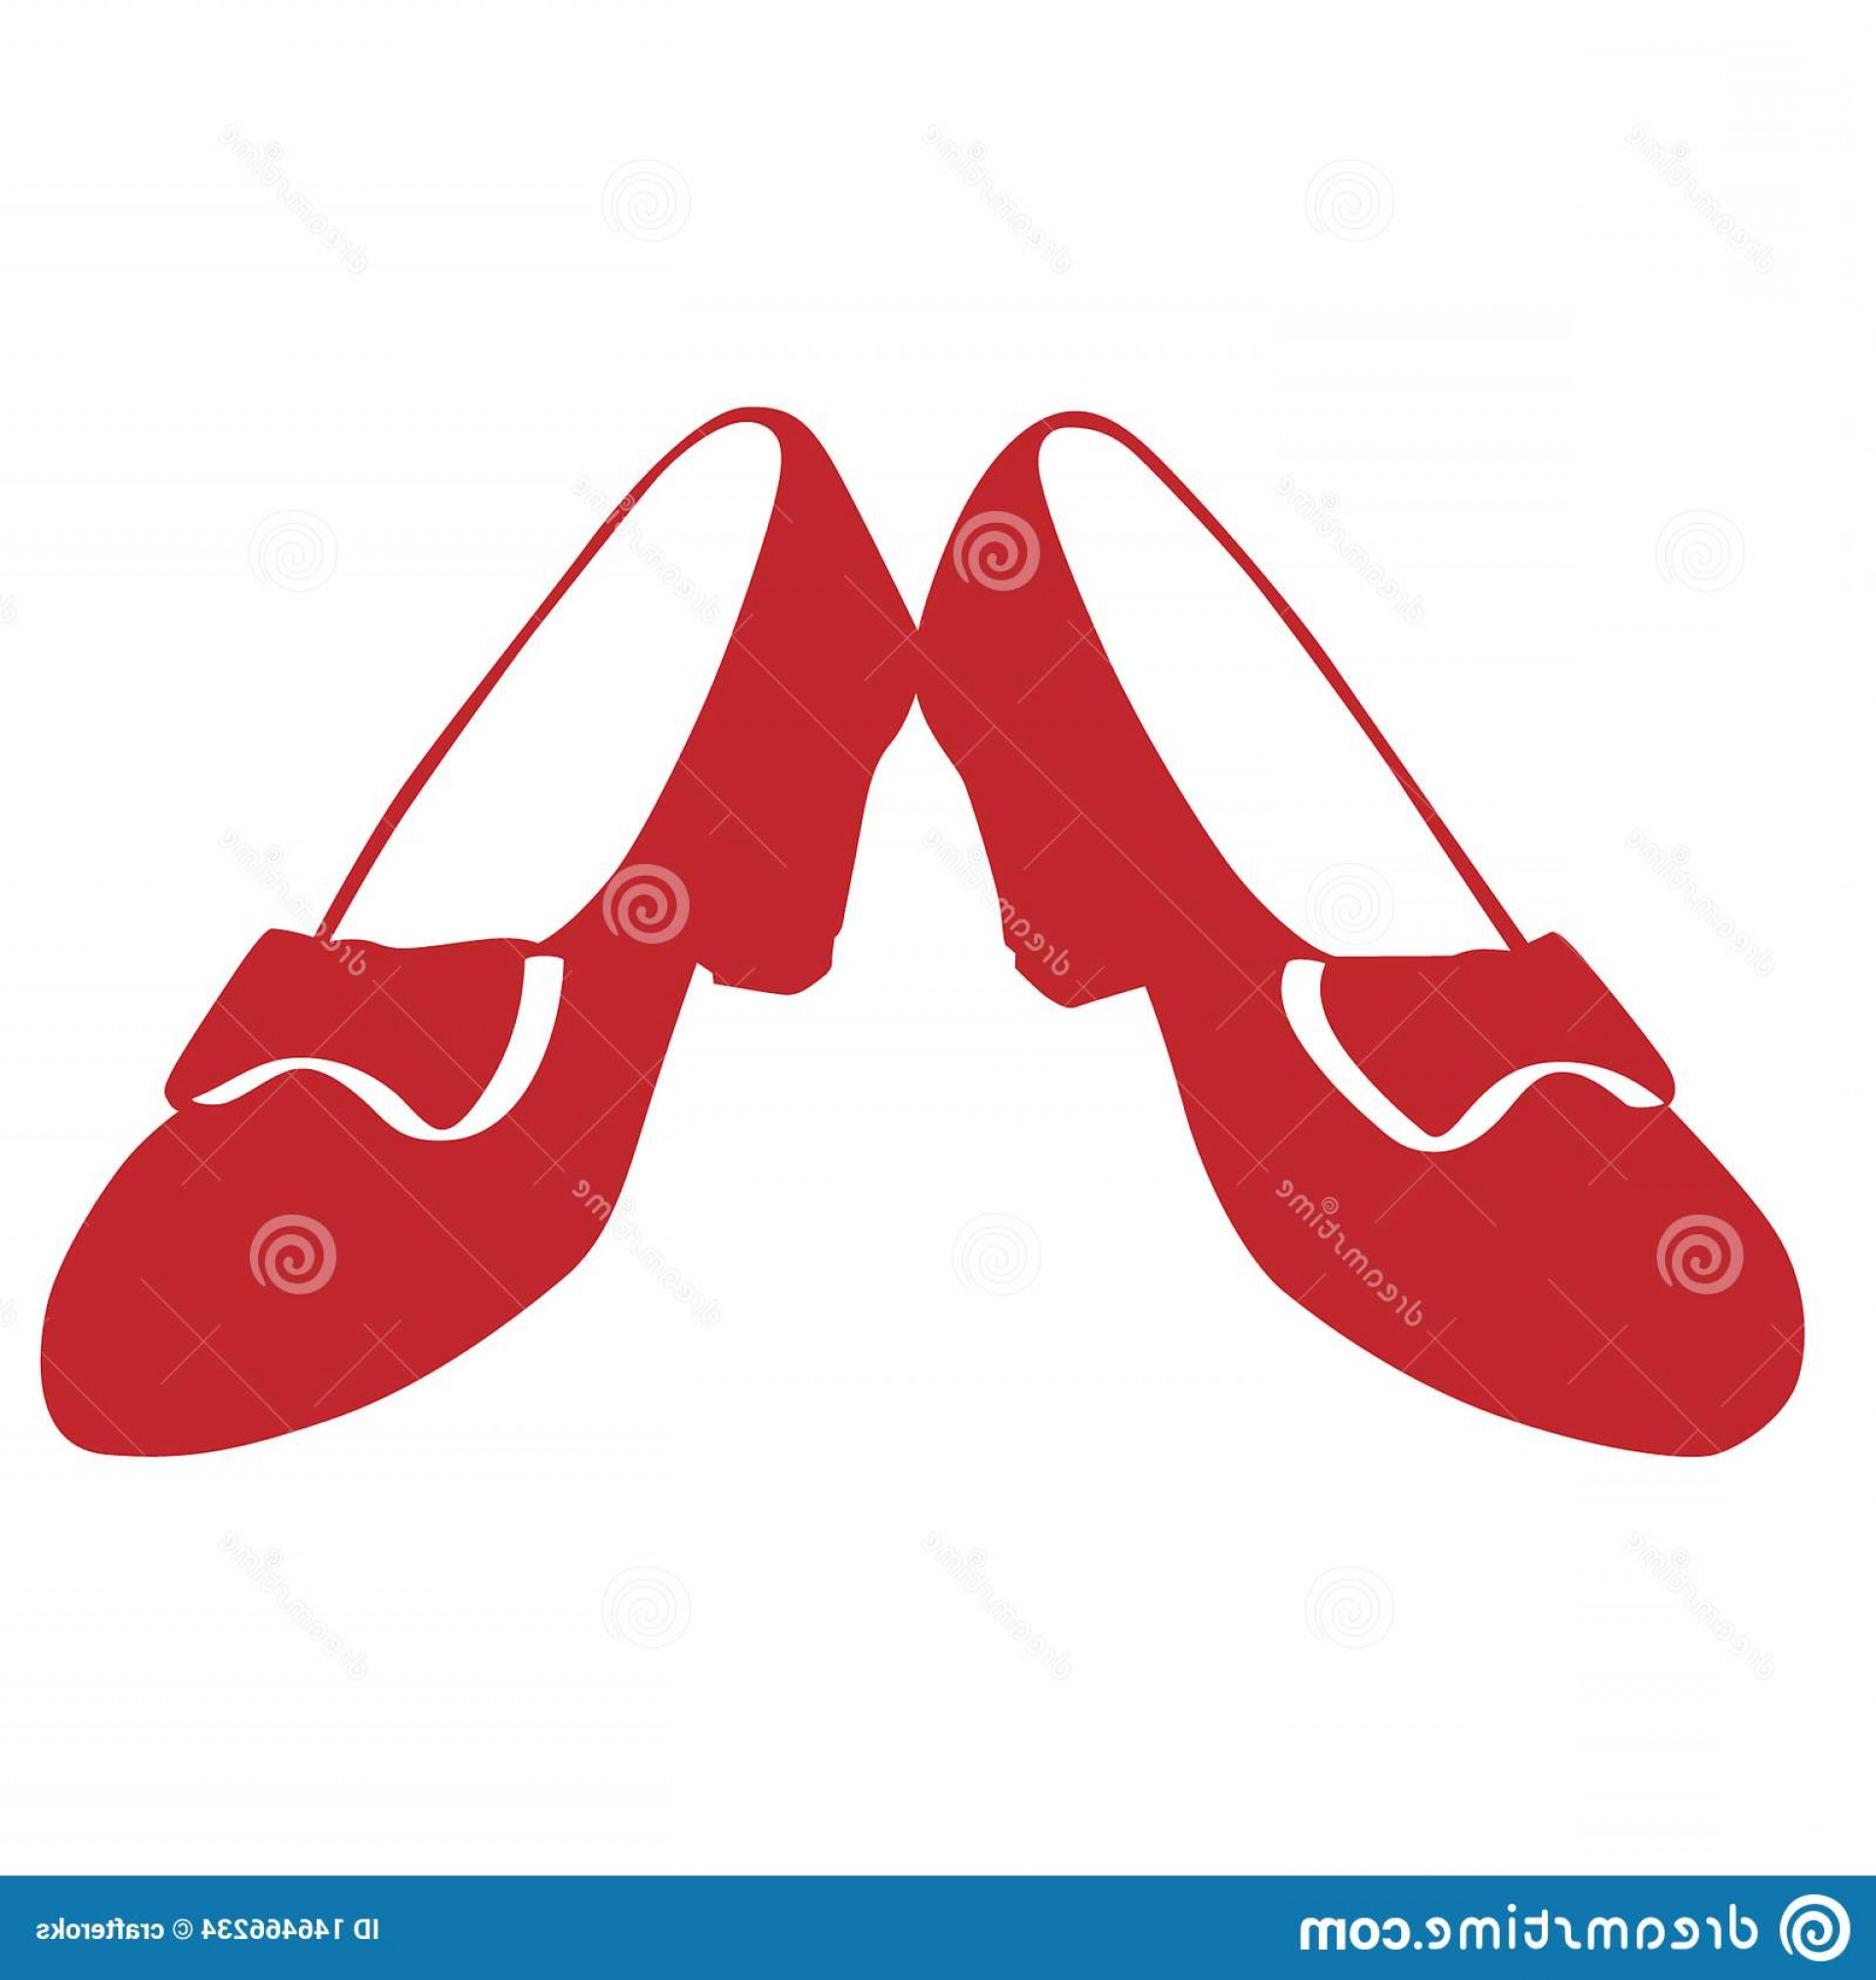 Ruby Red Slippers Vector Art: Ruby Red Slippers Ruby Red Slippers Image